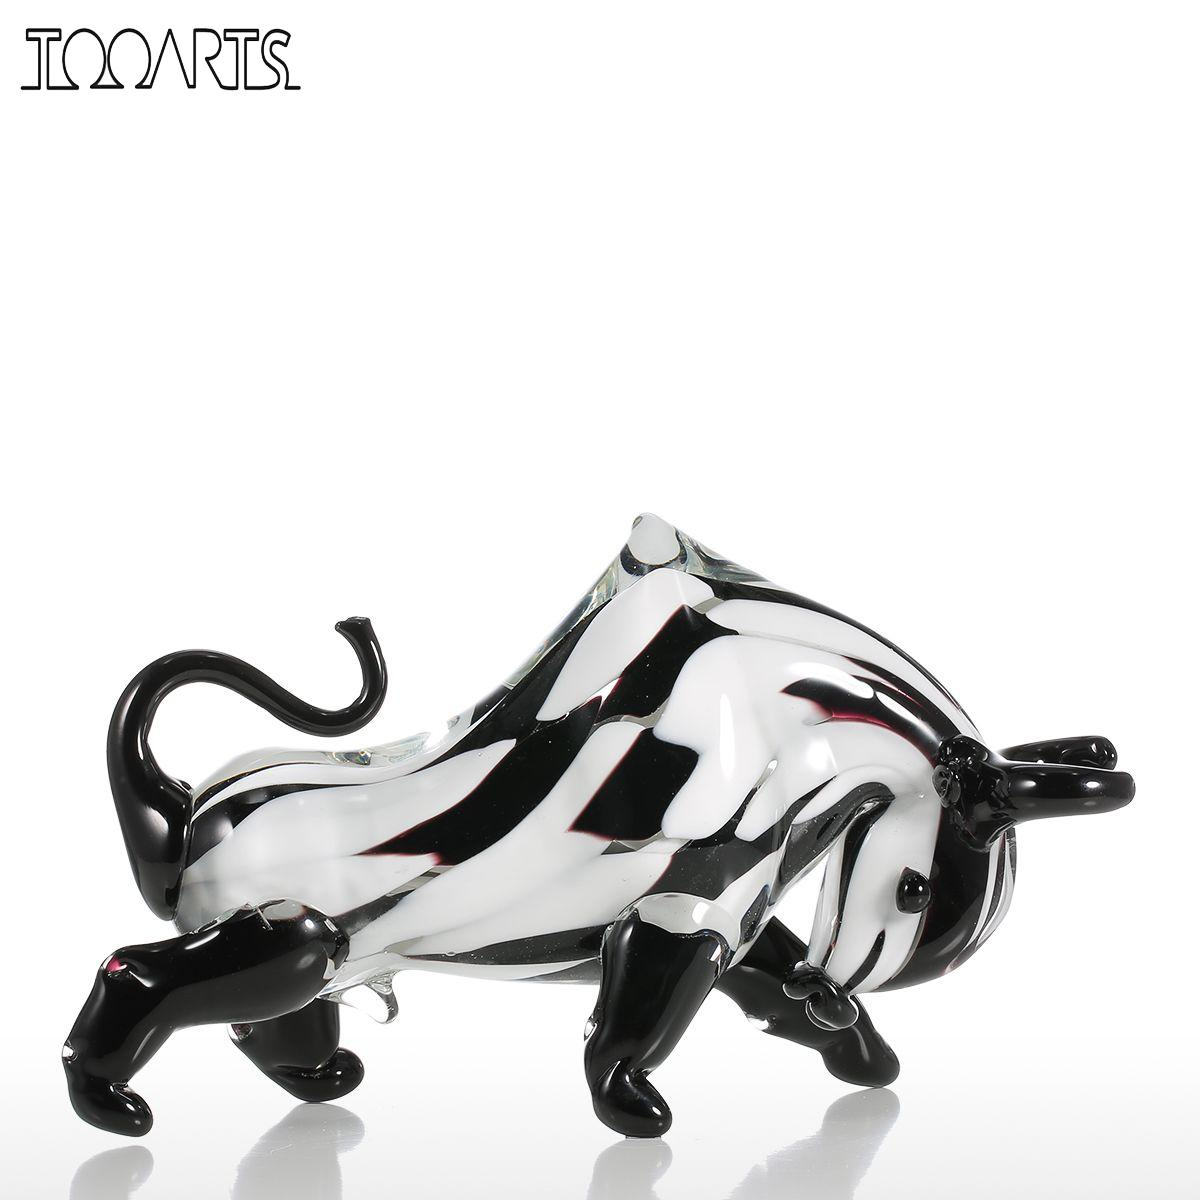 Tooarts Sculpture Black&White Cattle Glass Sculpture Home Decor Animal Ornament Gift Craft DecorationTooarts Sculpture Black&White Cattle Glass Sculpture Home Decor Animal Ornament Gift Craft Decoration